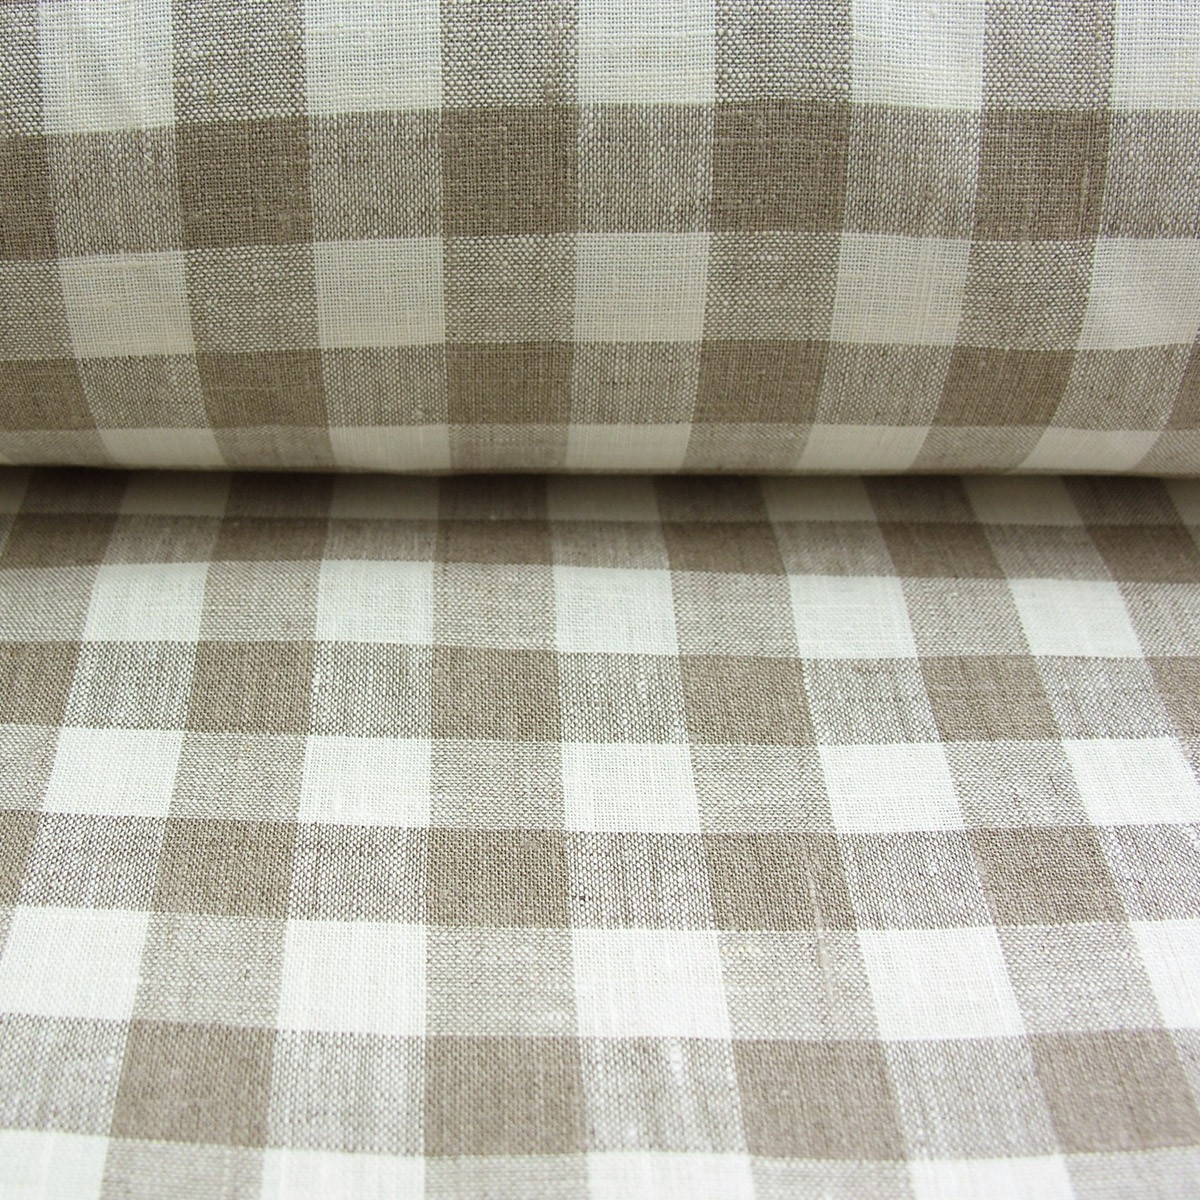 Linen Check Fabric Pertaining To Linen Fabric For Curtains (Image 7 of 15)